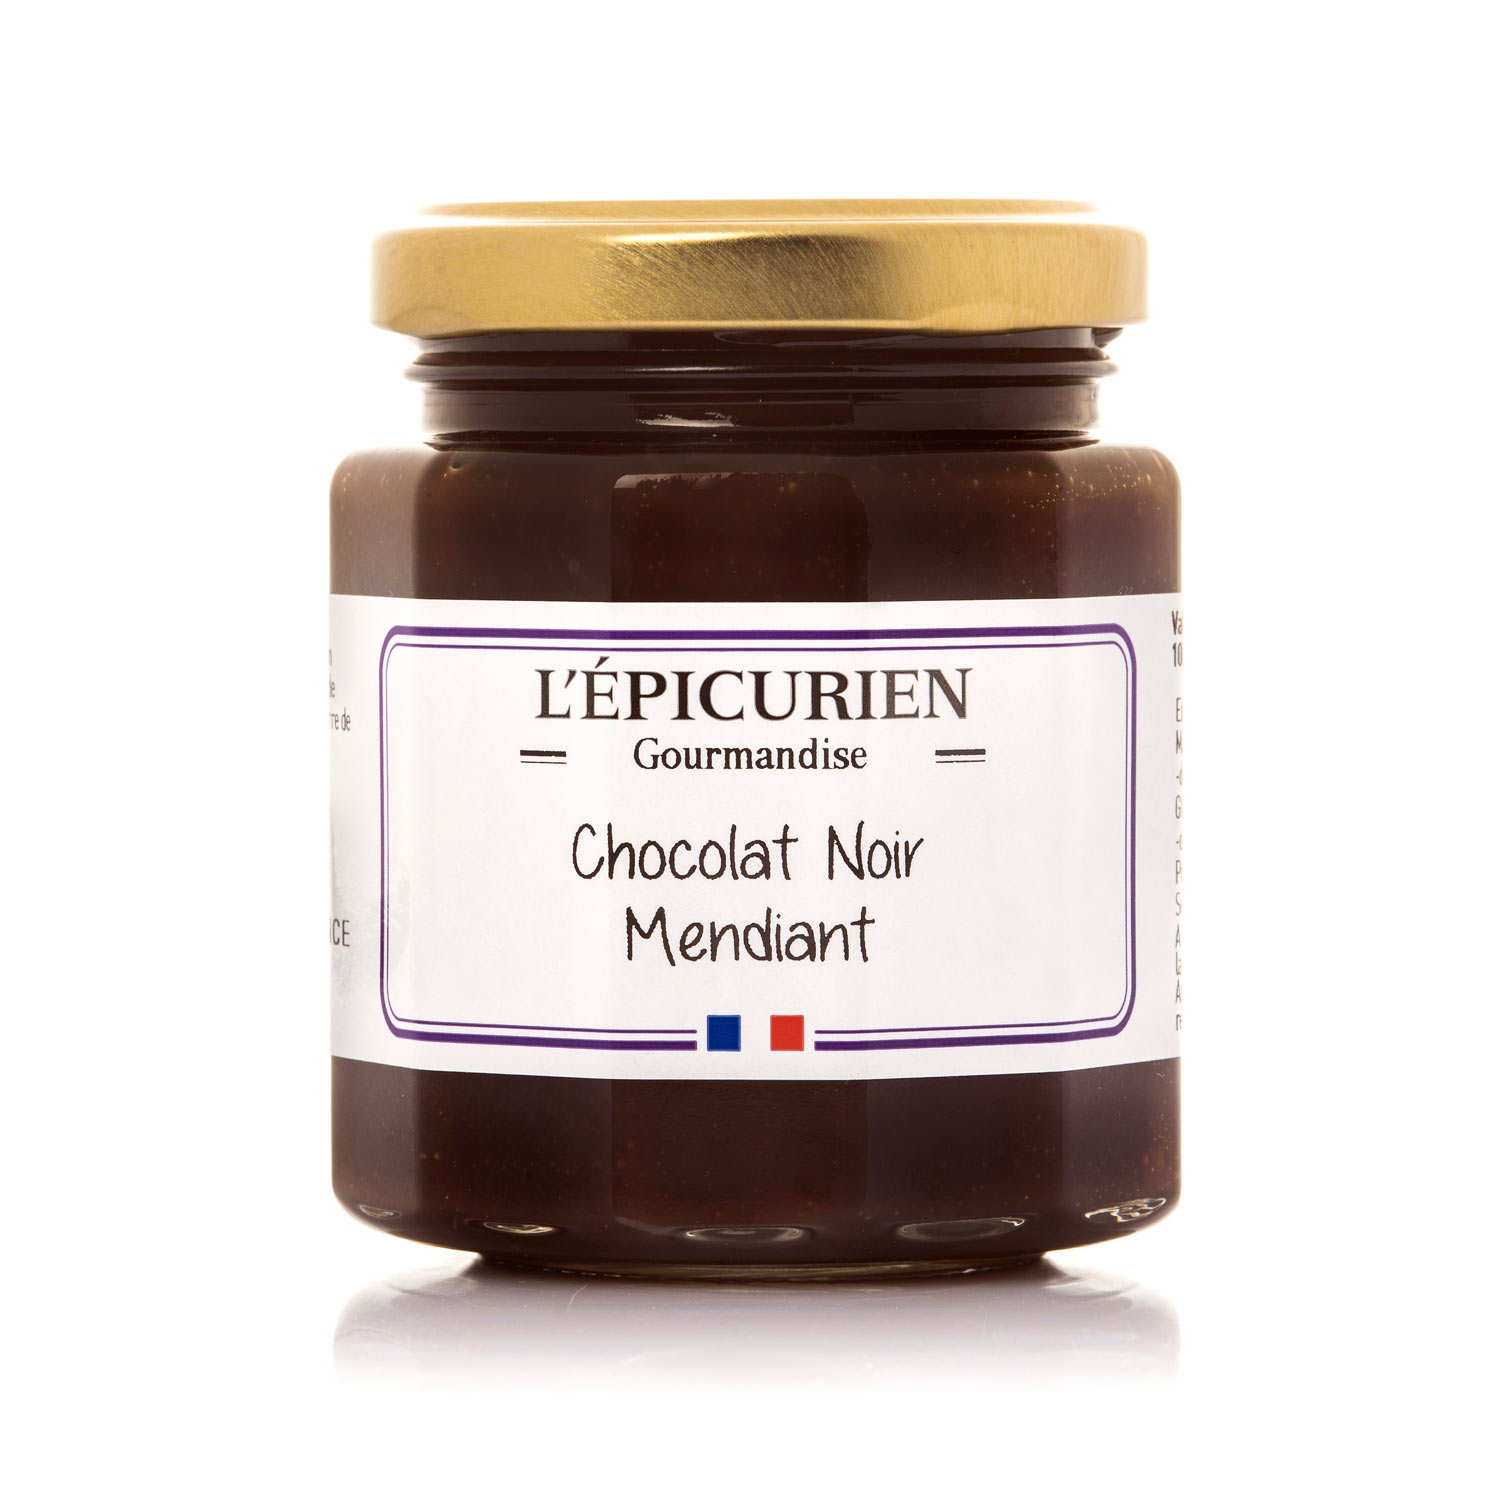 Dark chocolate spread with a pastry taste, l'Epicurien